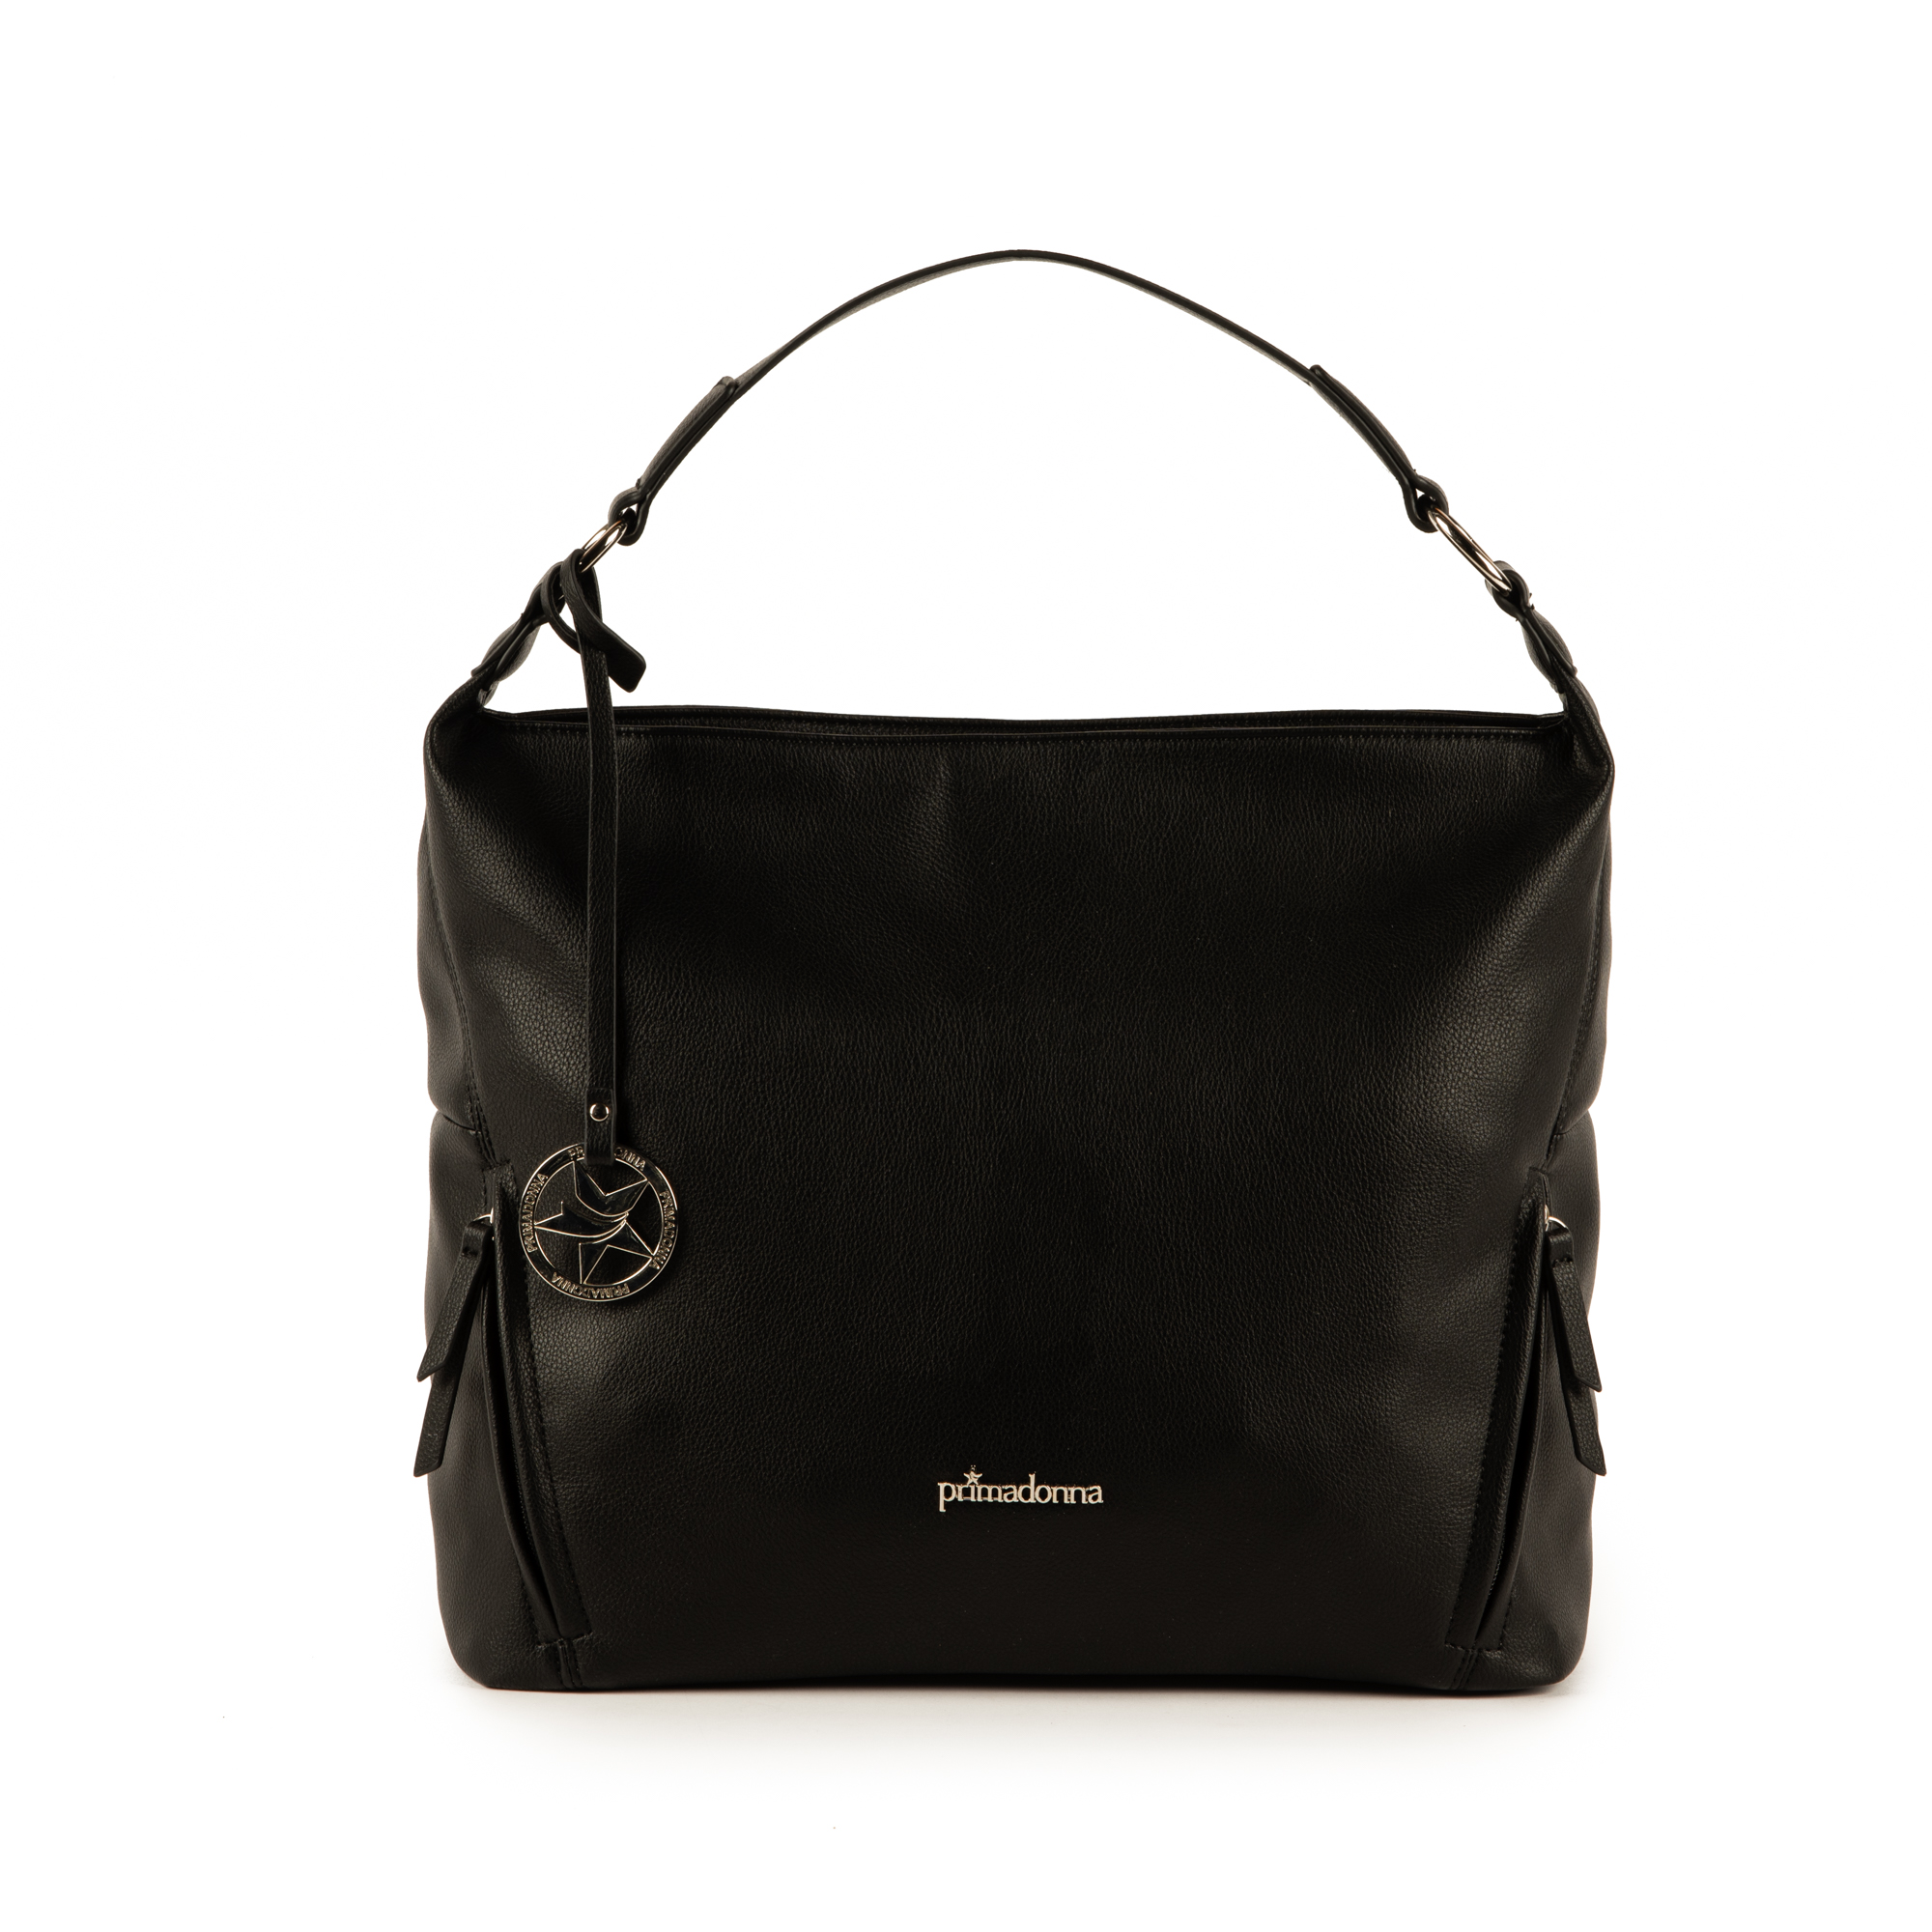 Maxi-bag de ecopiel en color negro